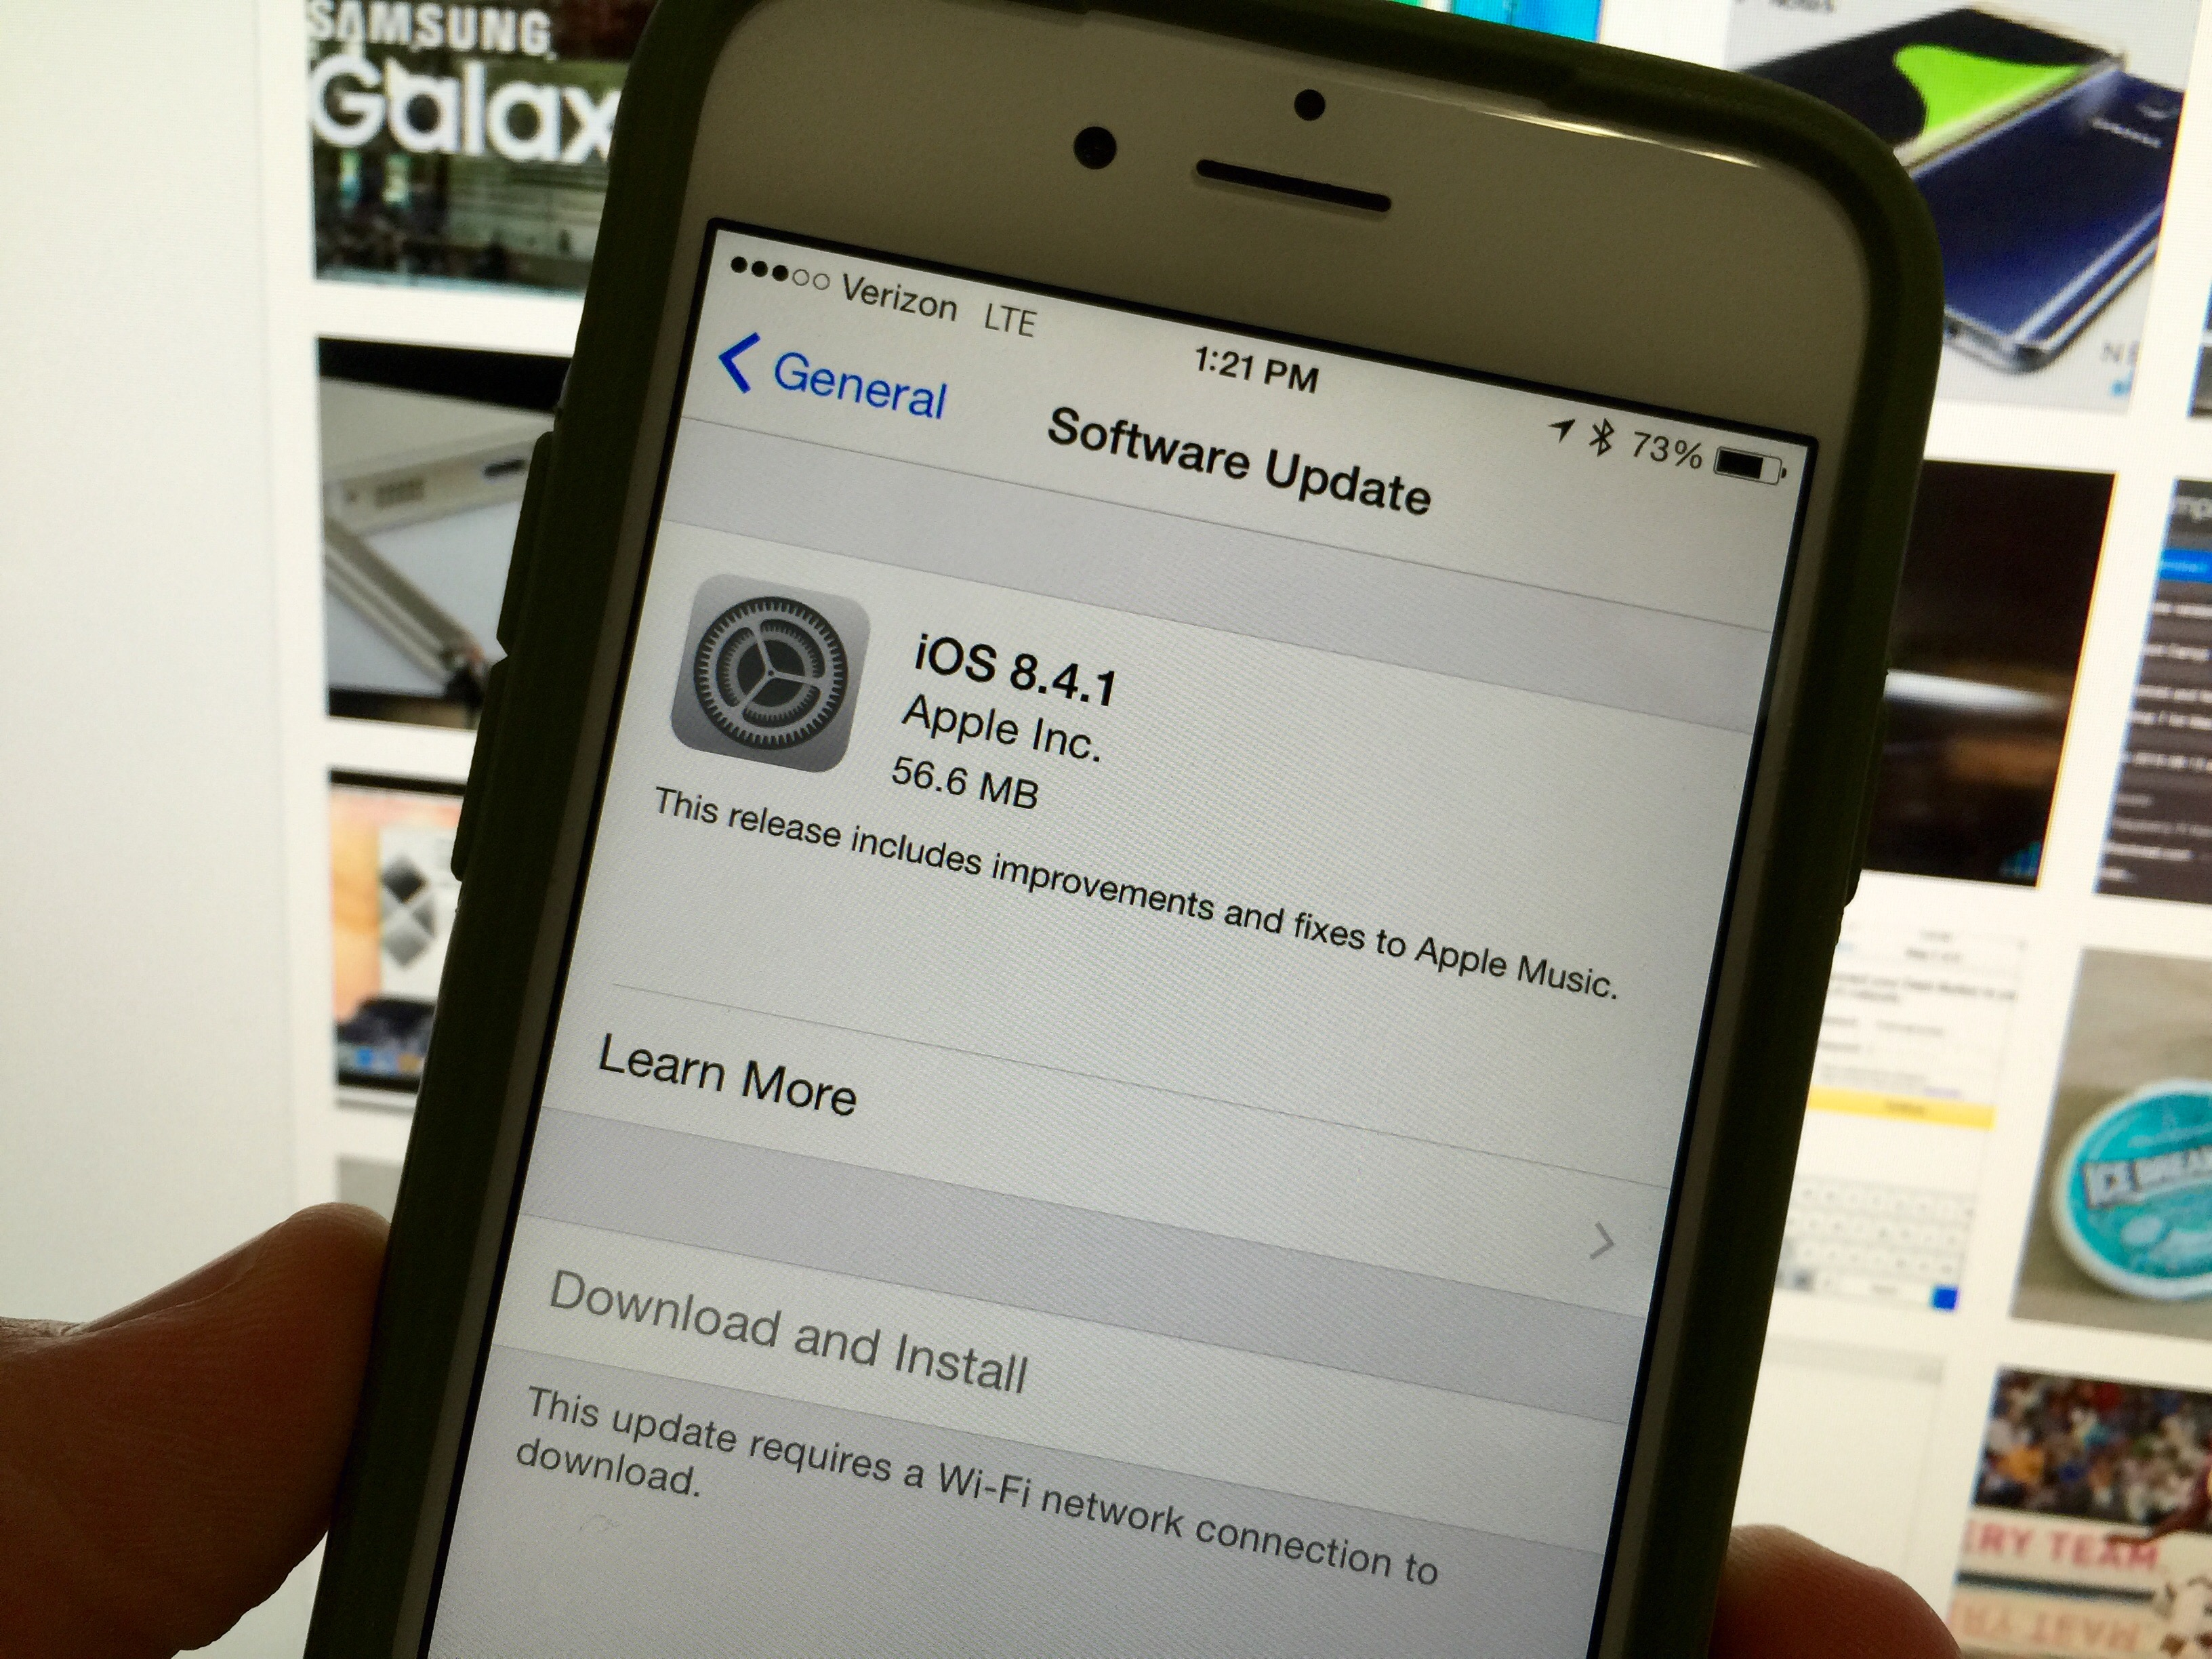 What's New in iOS 8 4 1